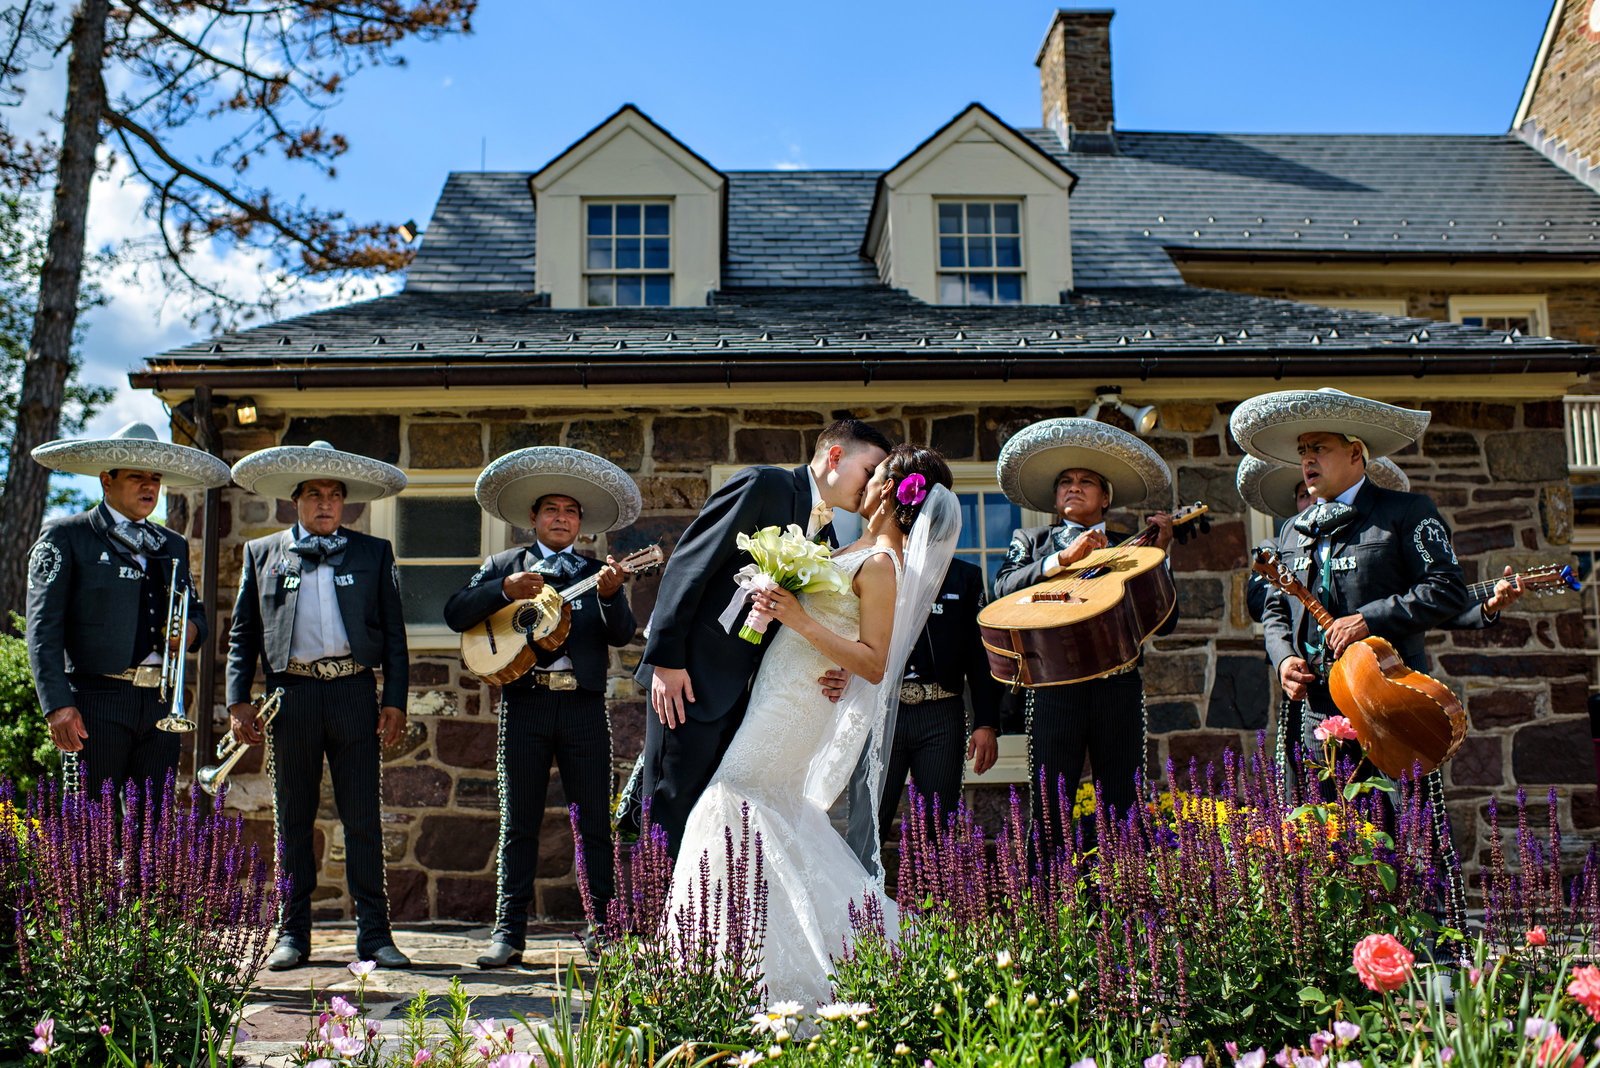 A mariachi band serenade a bride and groom on their wedding day at Pearl S Buck Estate.